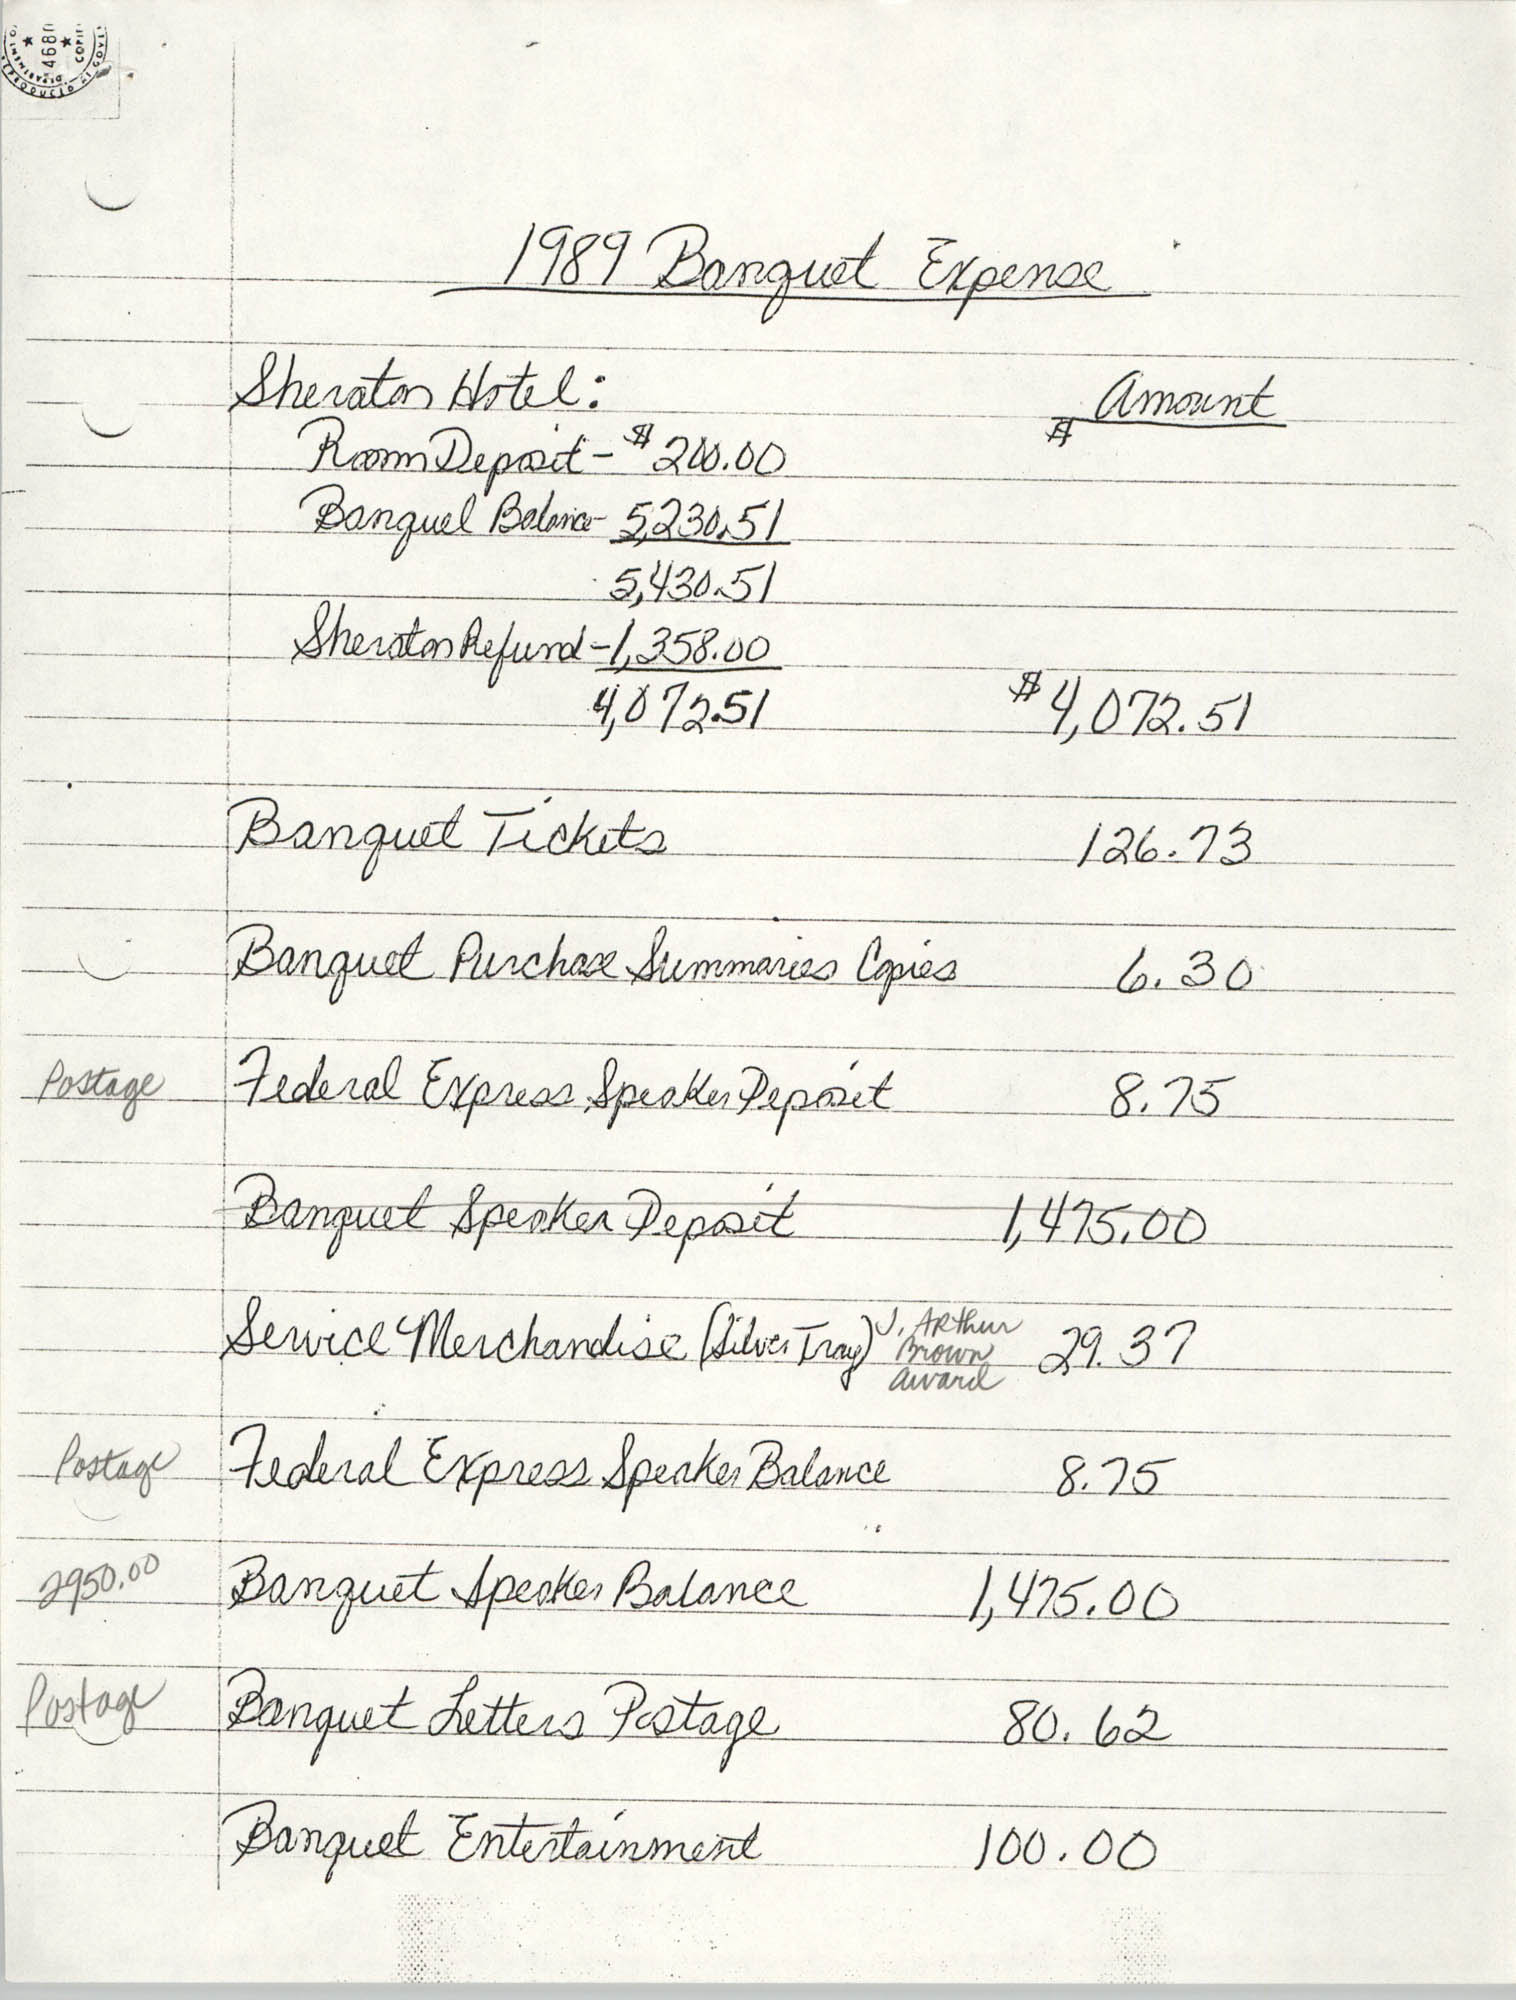 Handwritten Notes, 1989 Banquet Expenses